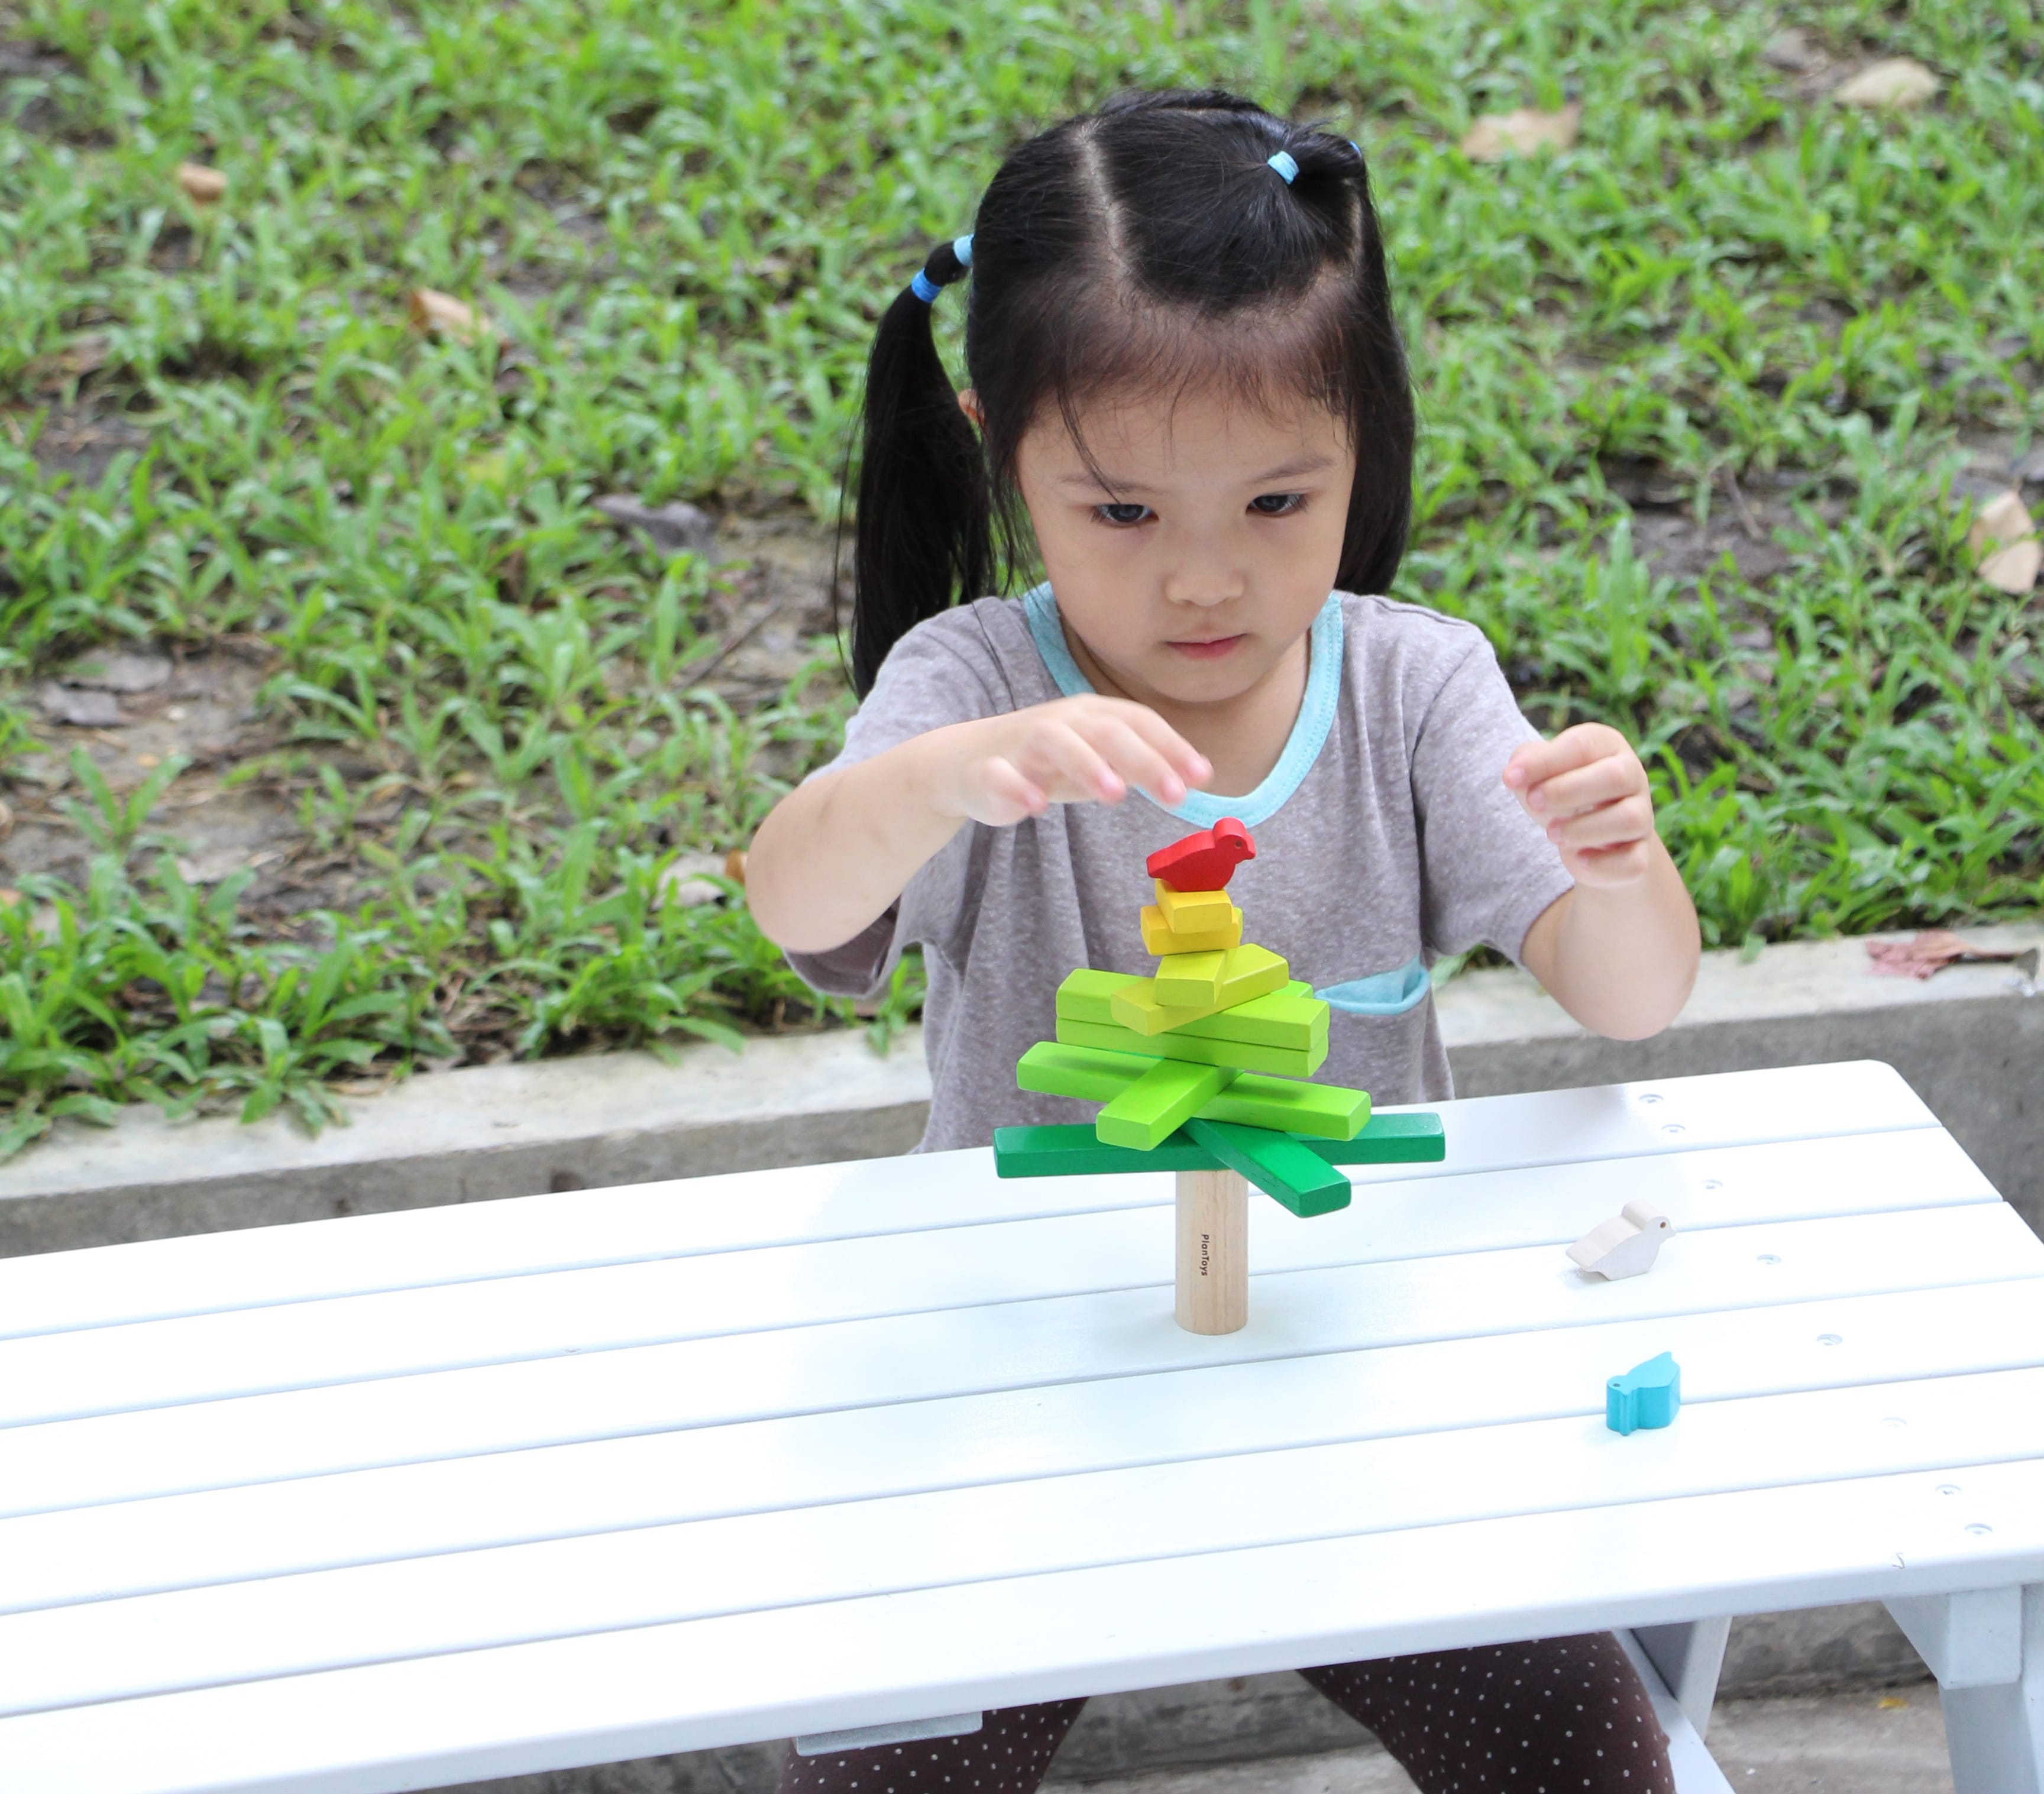 5140_PlanToys_BALANCING_TREE_Game_and_Puzzles_Fine_Motor_Social_Concentration_Coordination_3yrs_Wooden_toys_Education_toys_Safety_Toys_Non-toxic_7.jpg